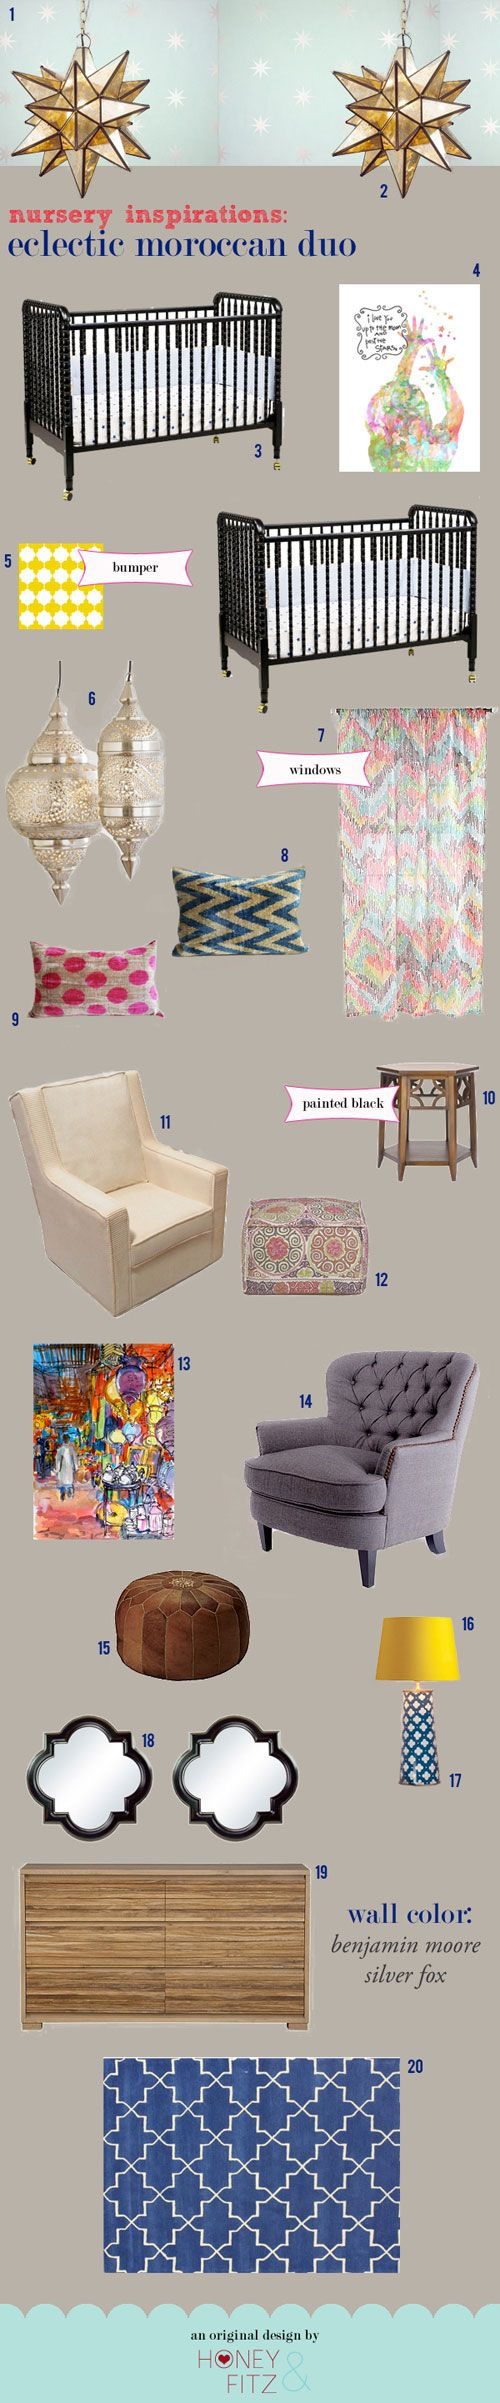 best our home morocco images on pinterest morocco home ideas